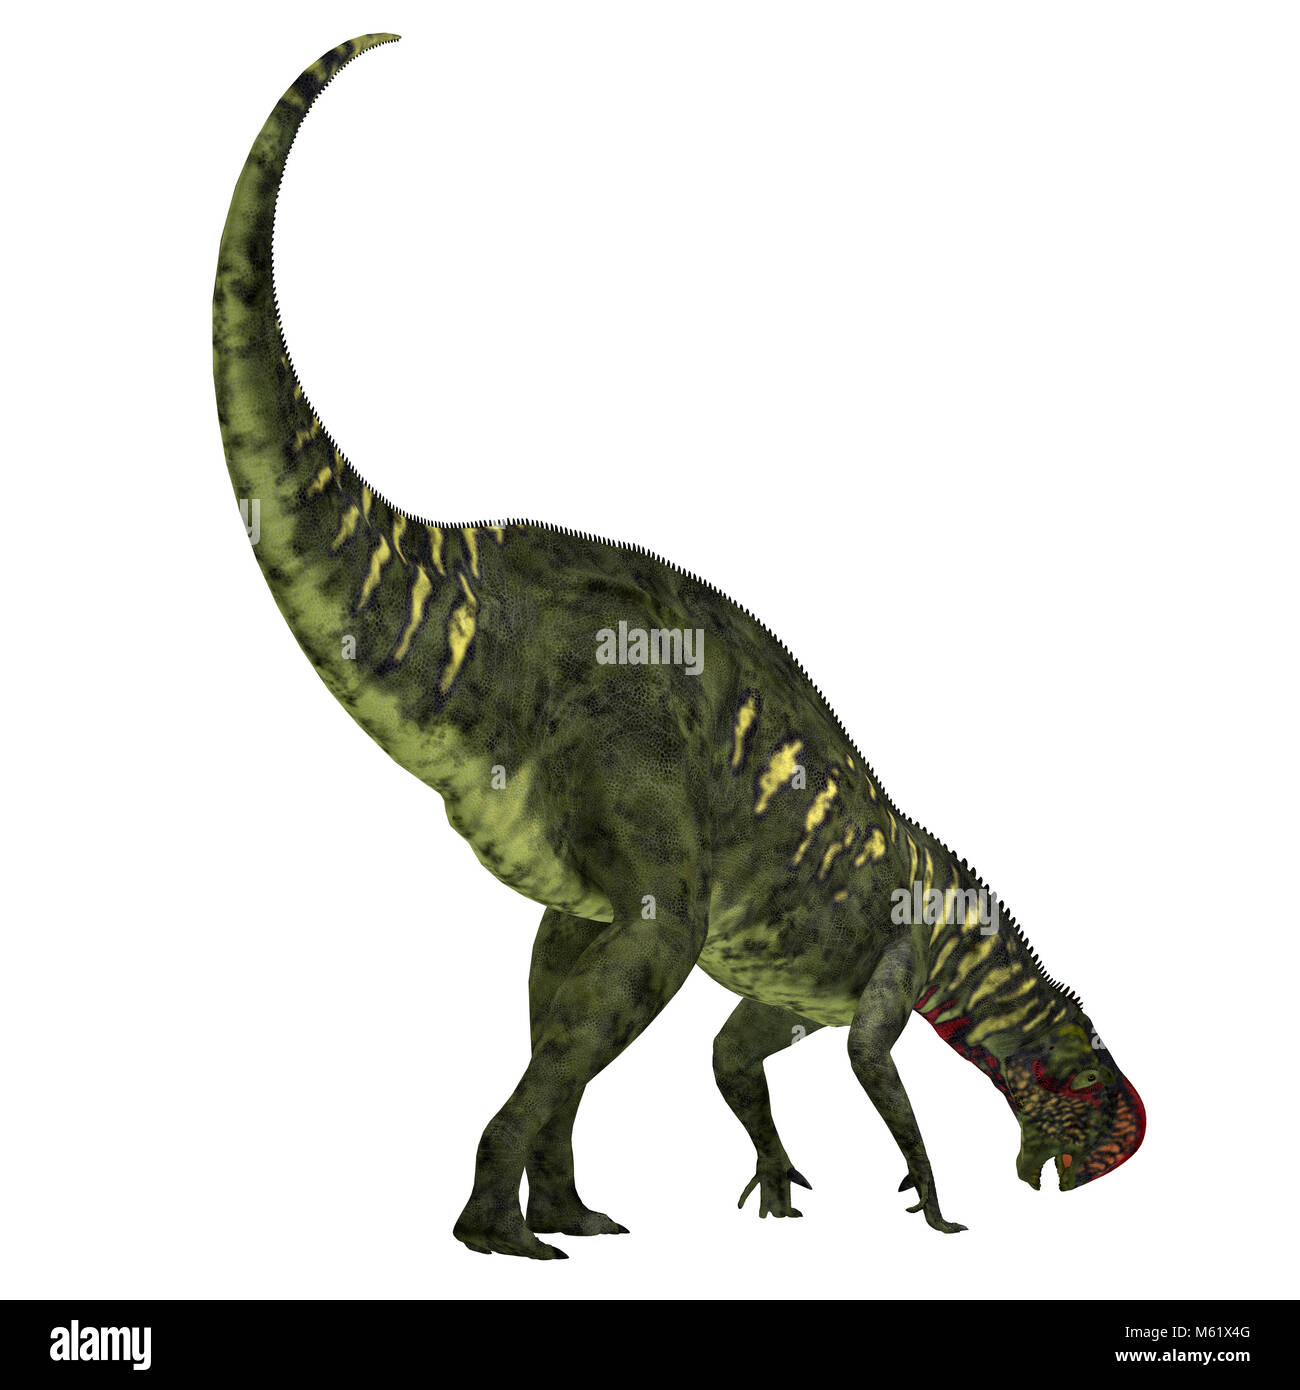 Altirhinus was an iguanodont herbivore dinosaur from the Cretaceous Period of Mongolia. - Stock Image